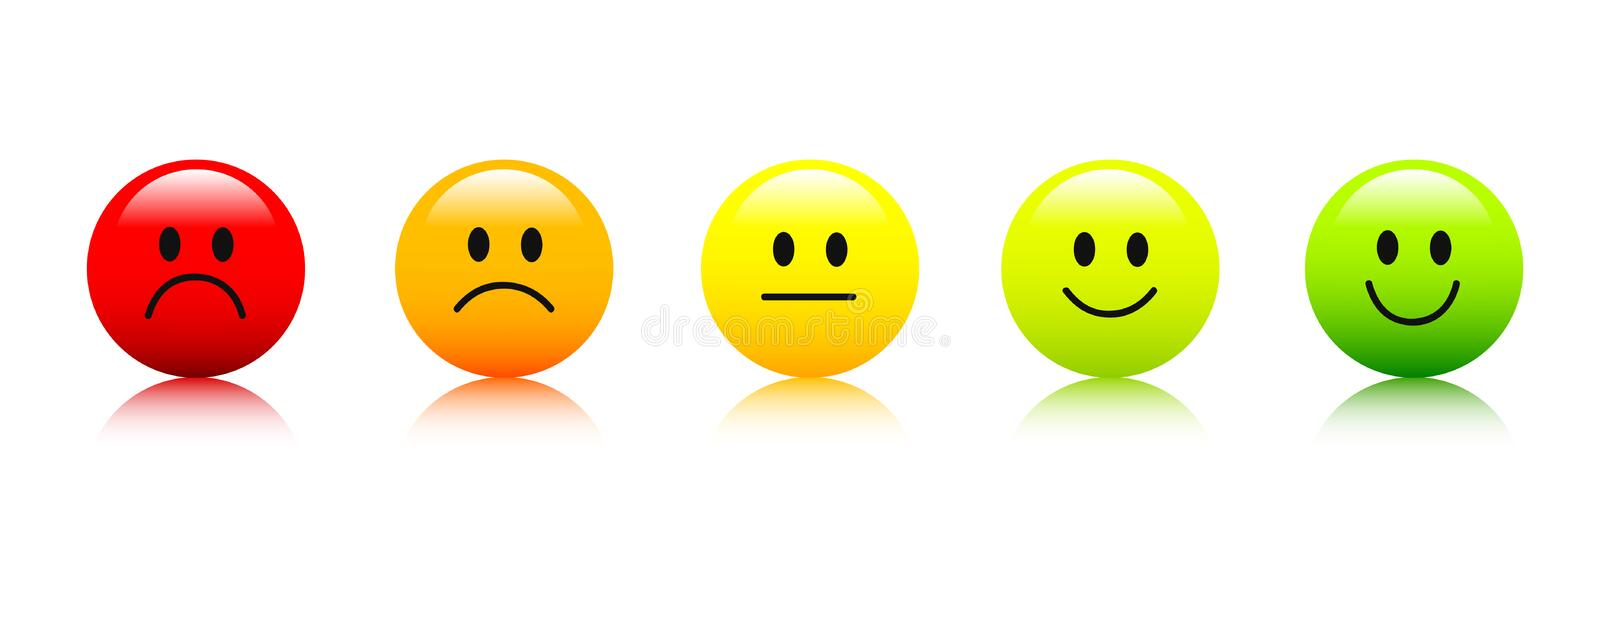 Rating smiley faces red to green icon stock illustration